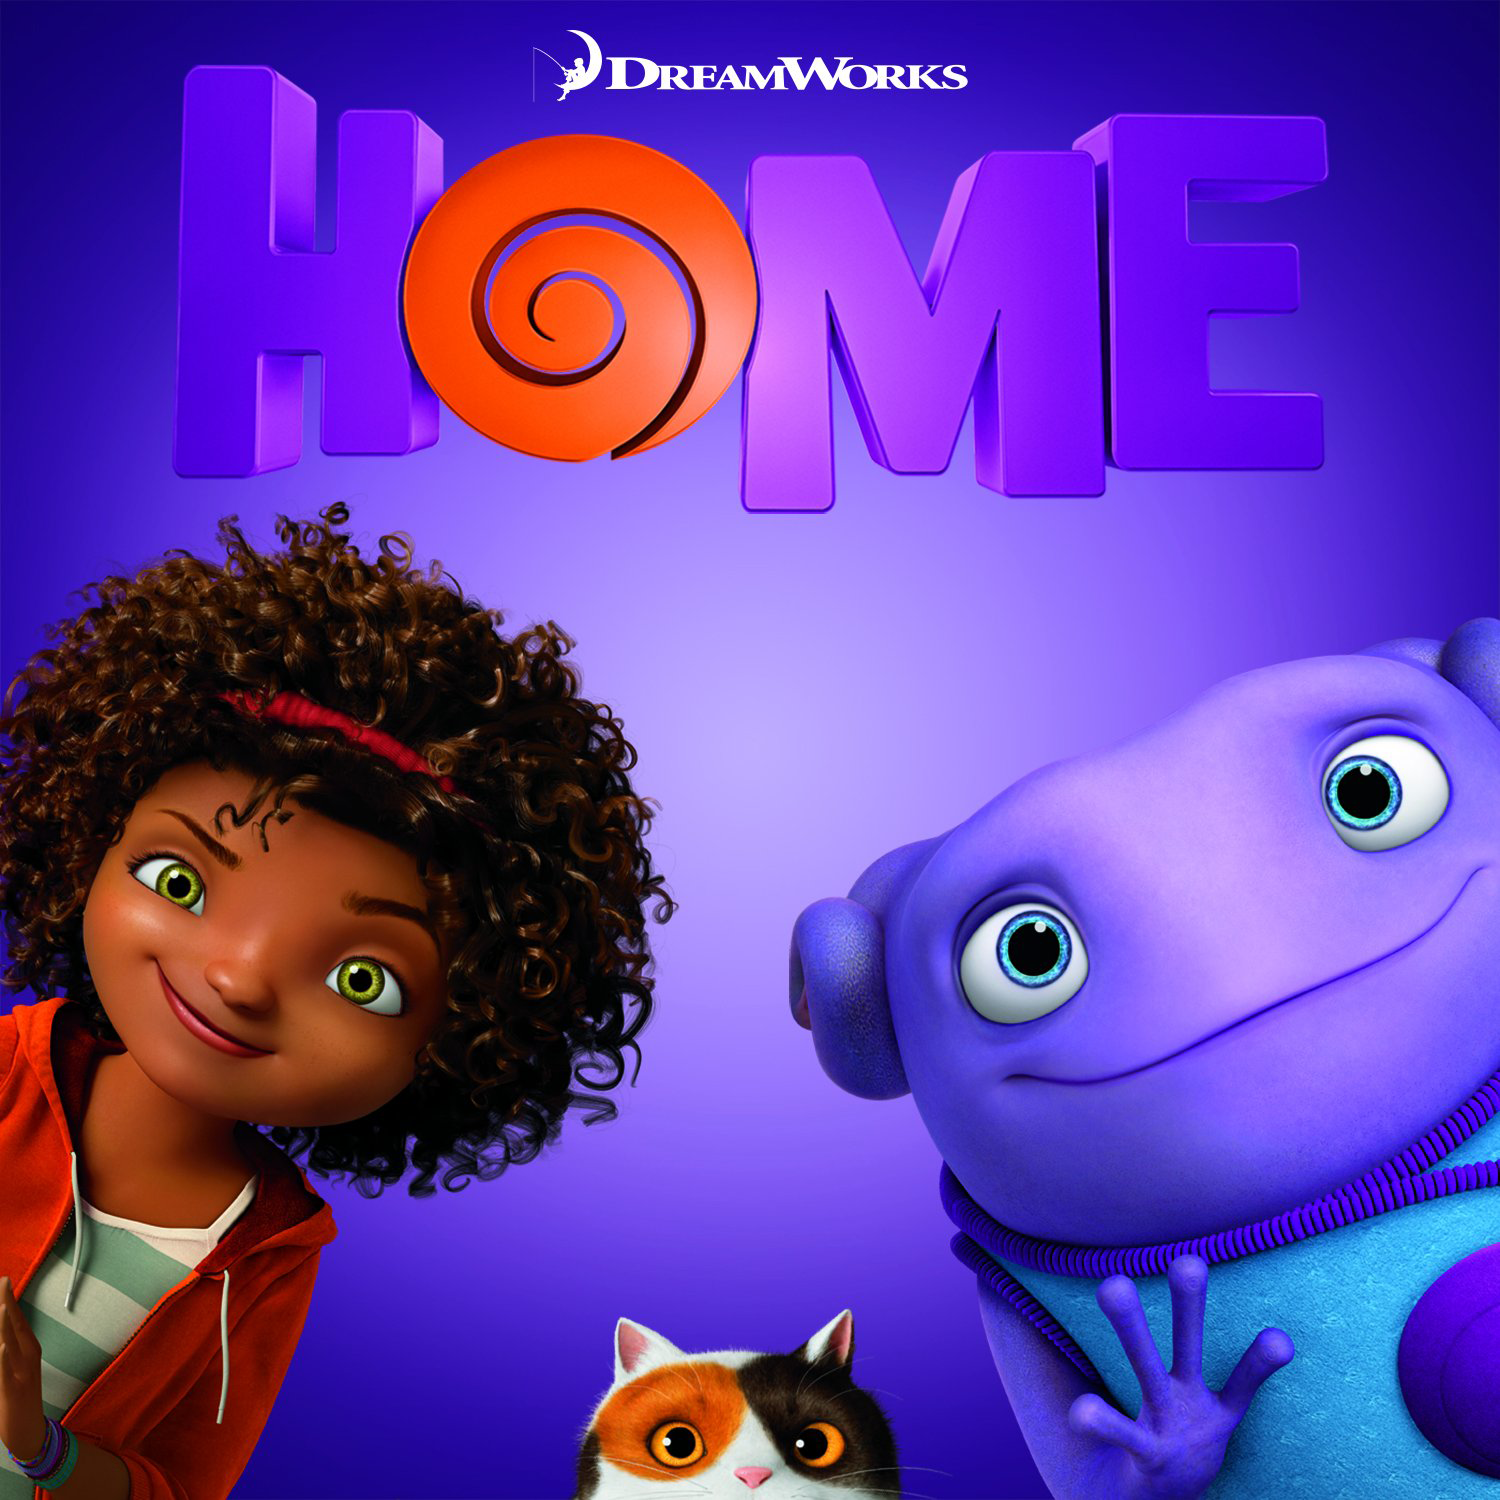 Home dreamworks animation movie at the weekend box office for Wallpaper hd home movie